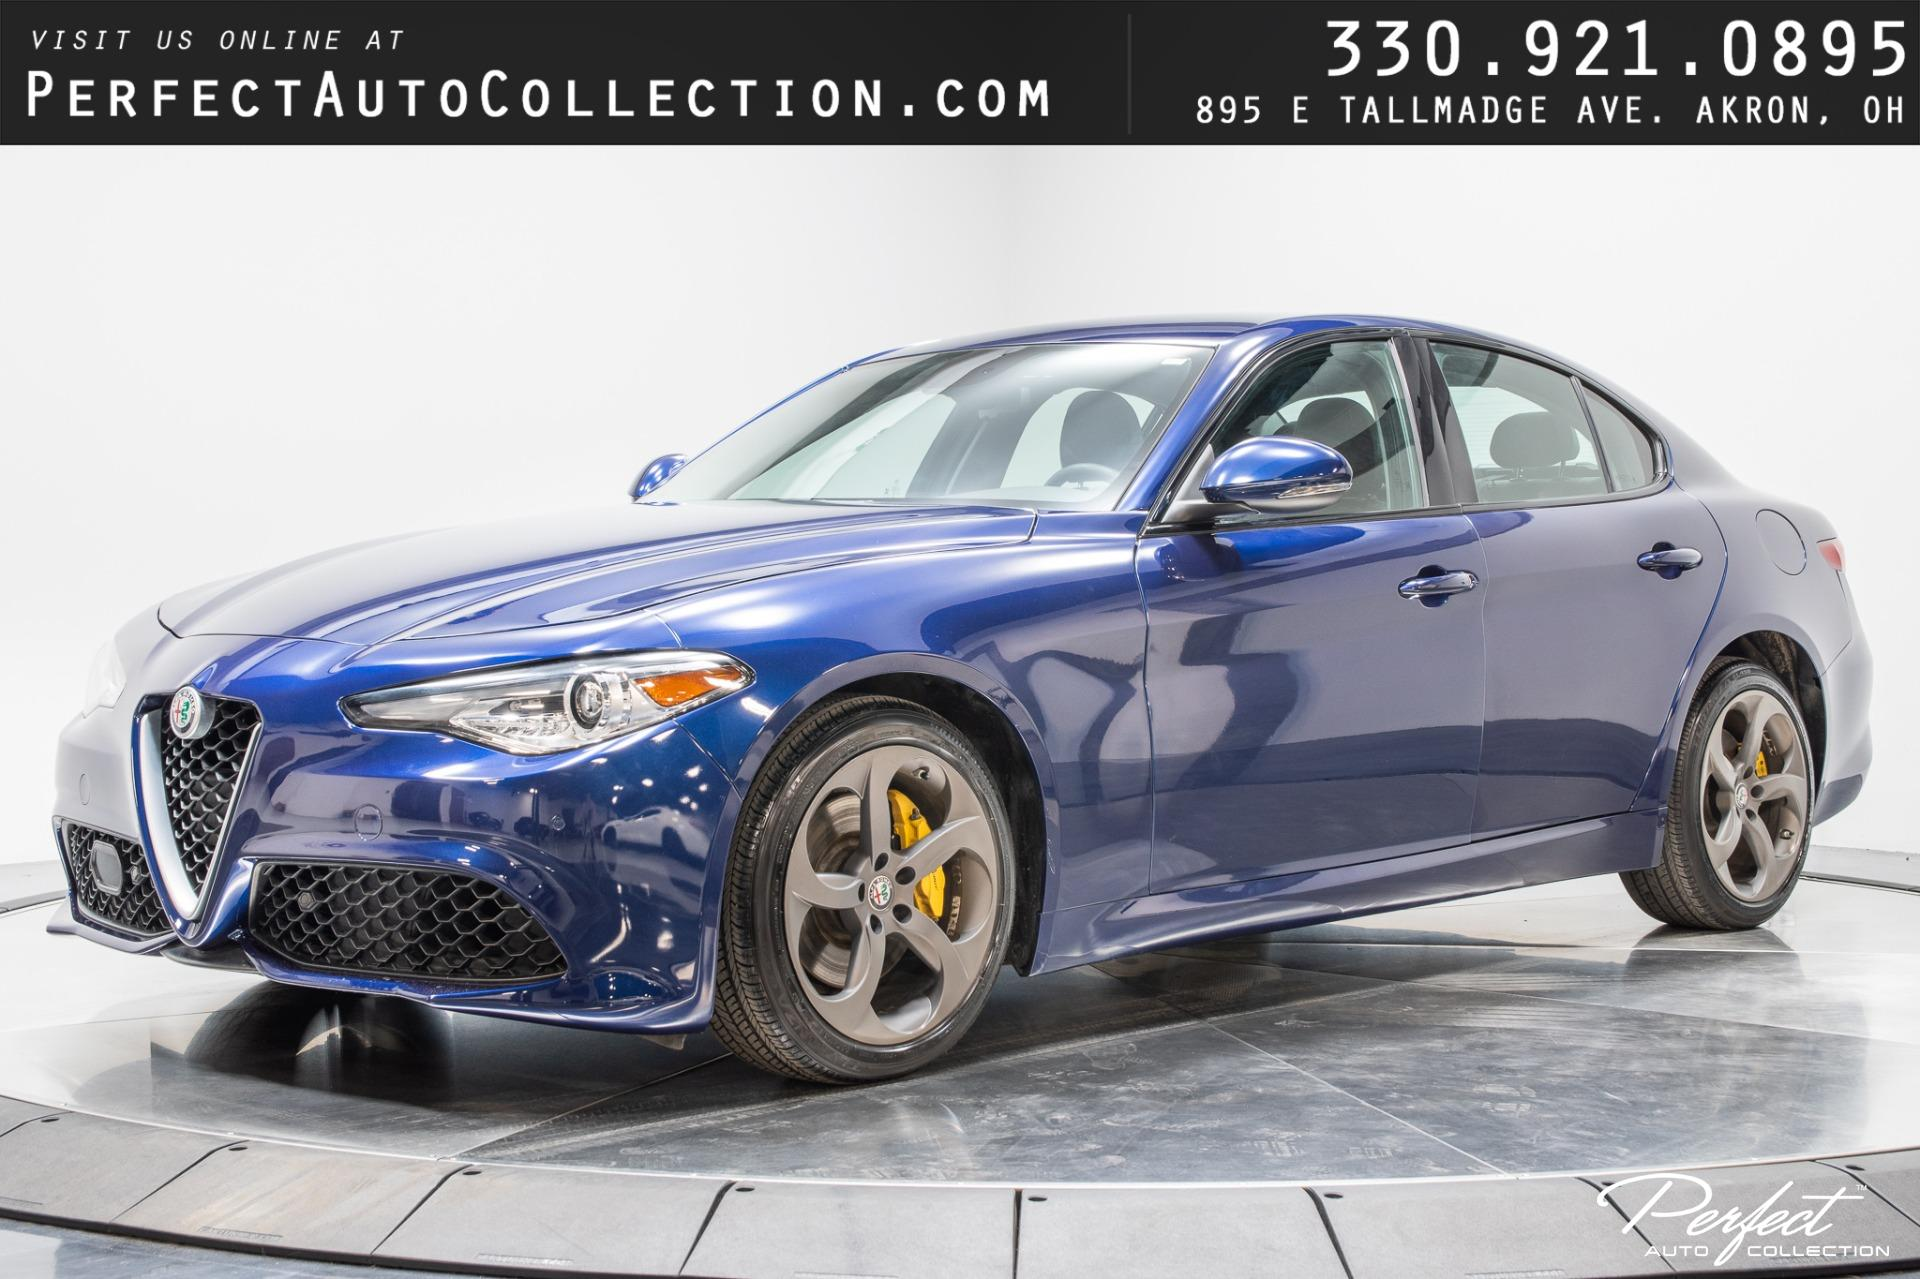 Used 2017 Alfa Romeo Giulia for sale Sold at Perfect Auto Collection in Akron OH 44310 1